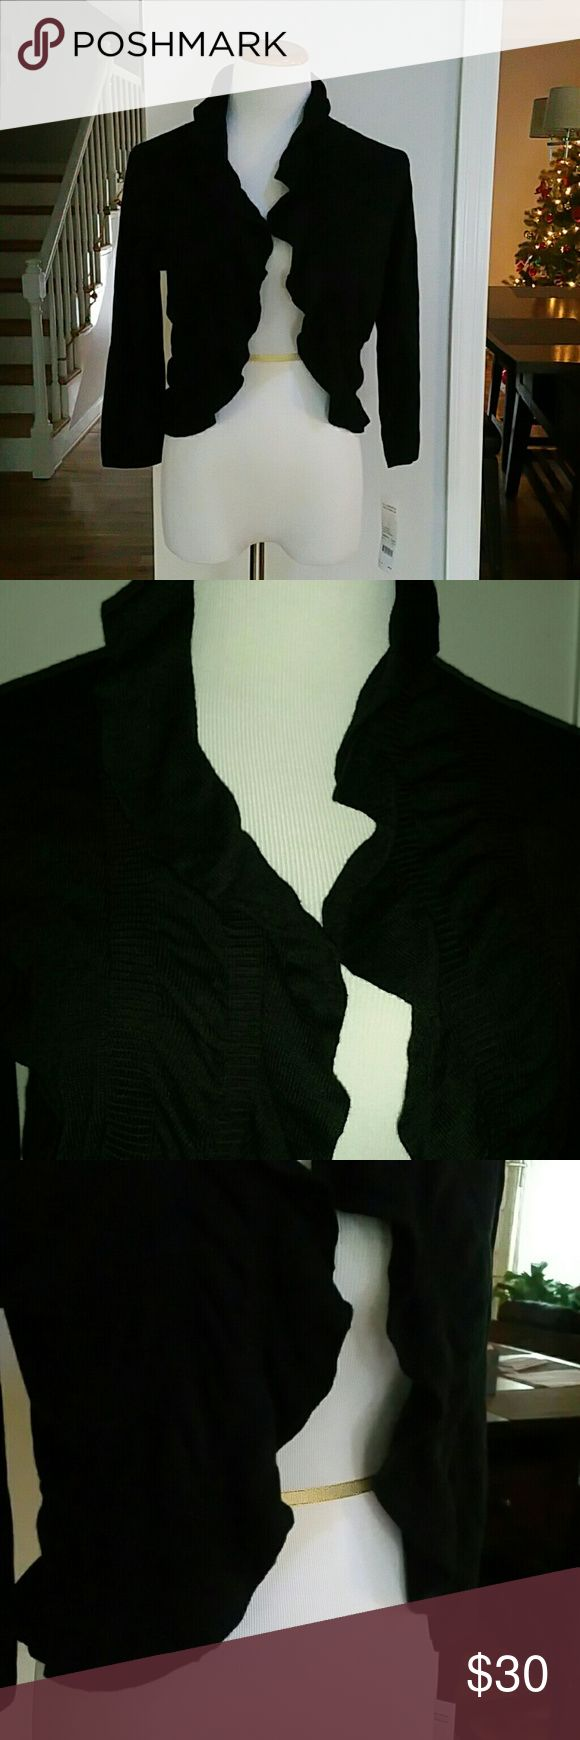 NWT NY COLLECTION CARDIGAN NWT NY Collection Ruffled Cropped Cardigan  Color : Black Size : Medium  Materials : 60% COTTON  40% RAYON NY Collection Sweaters Cardigans